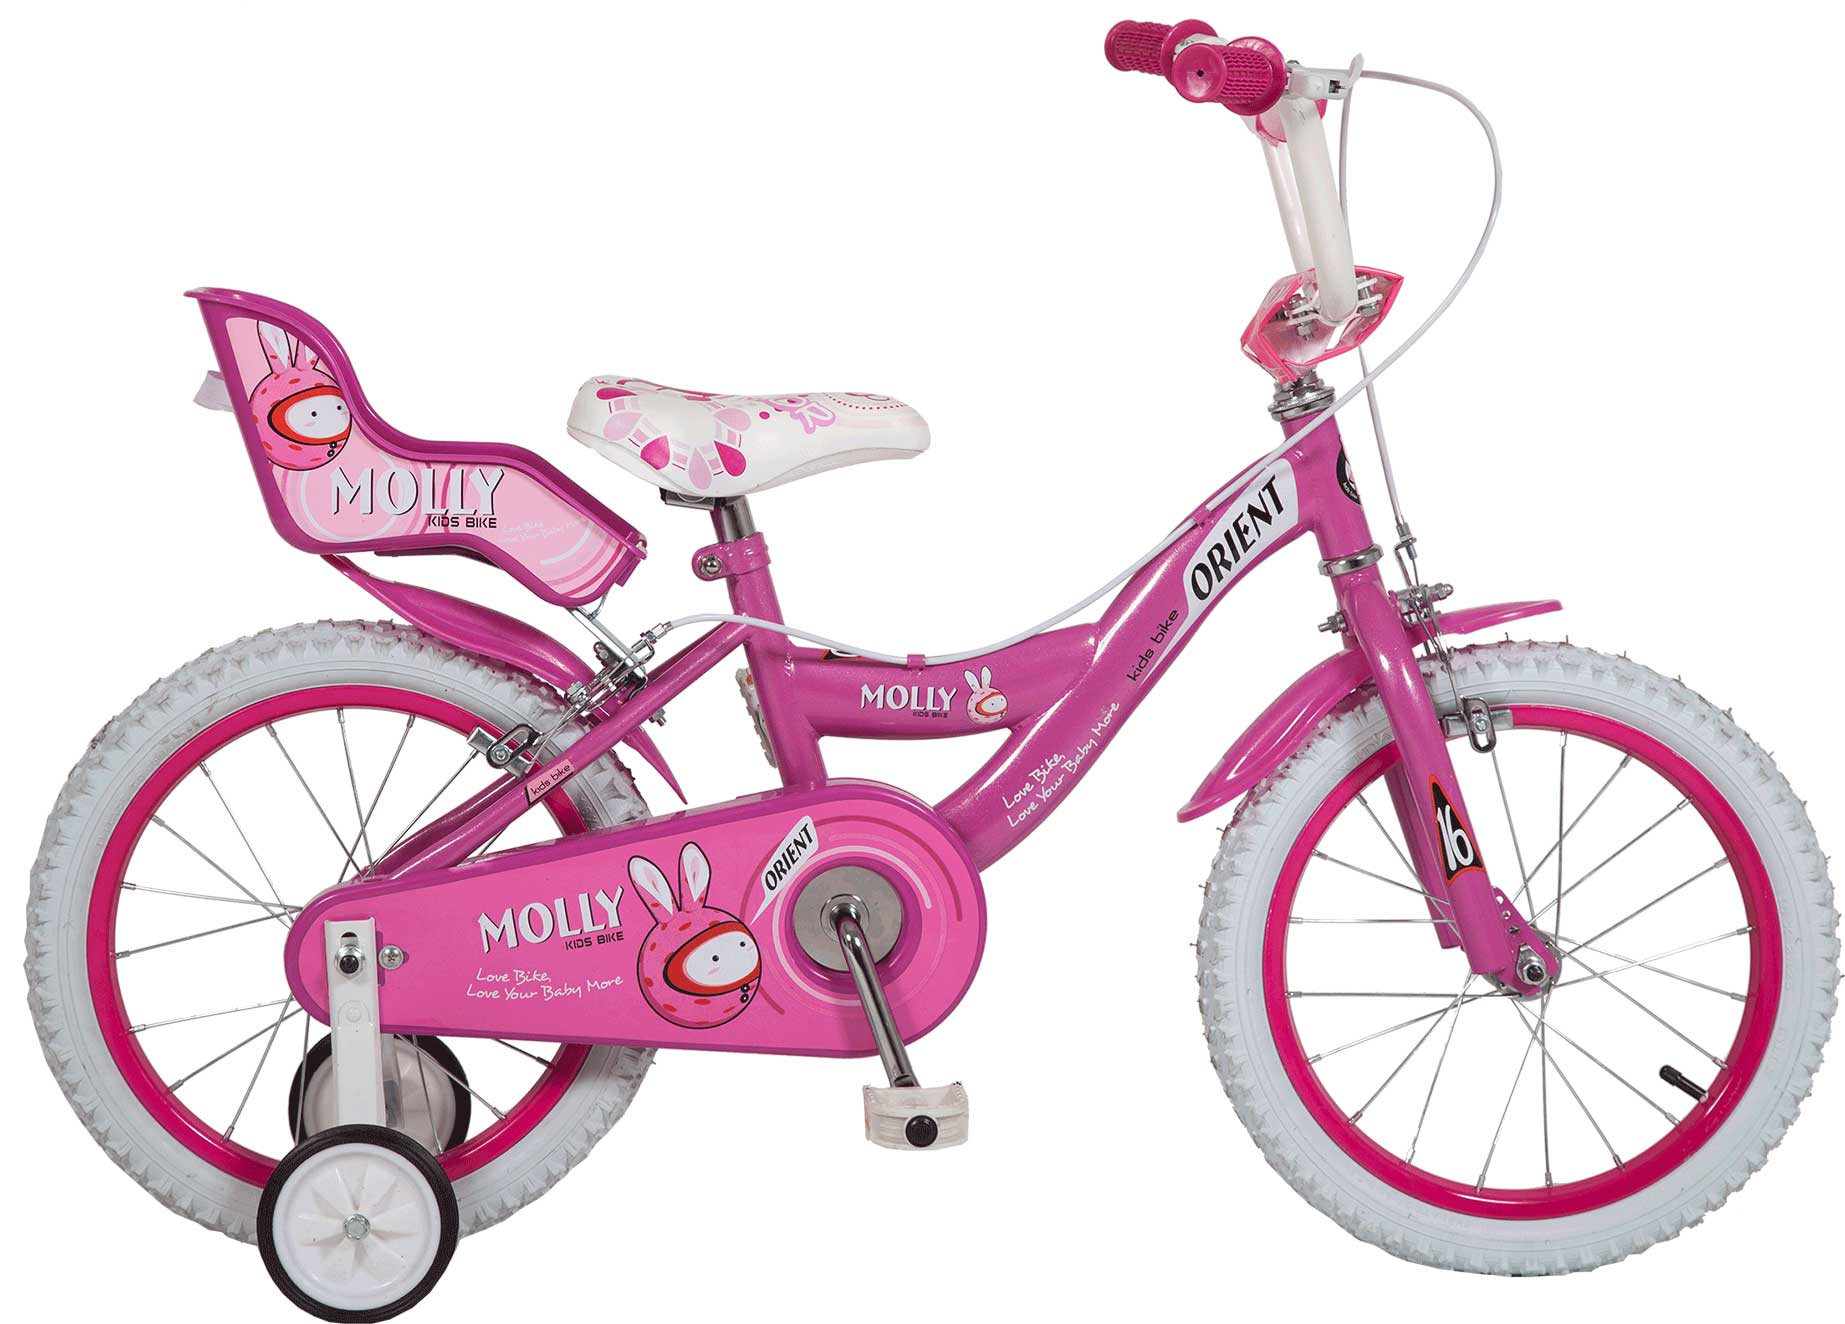 MOLLY 16″ bike image